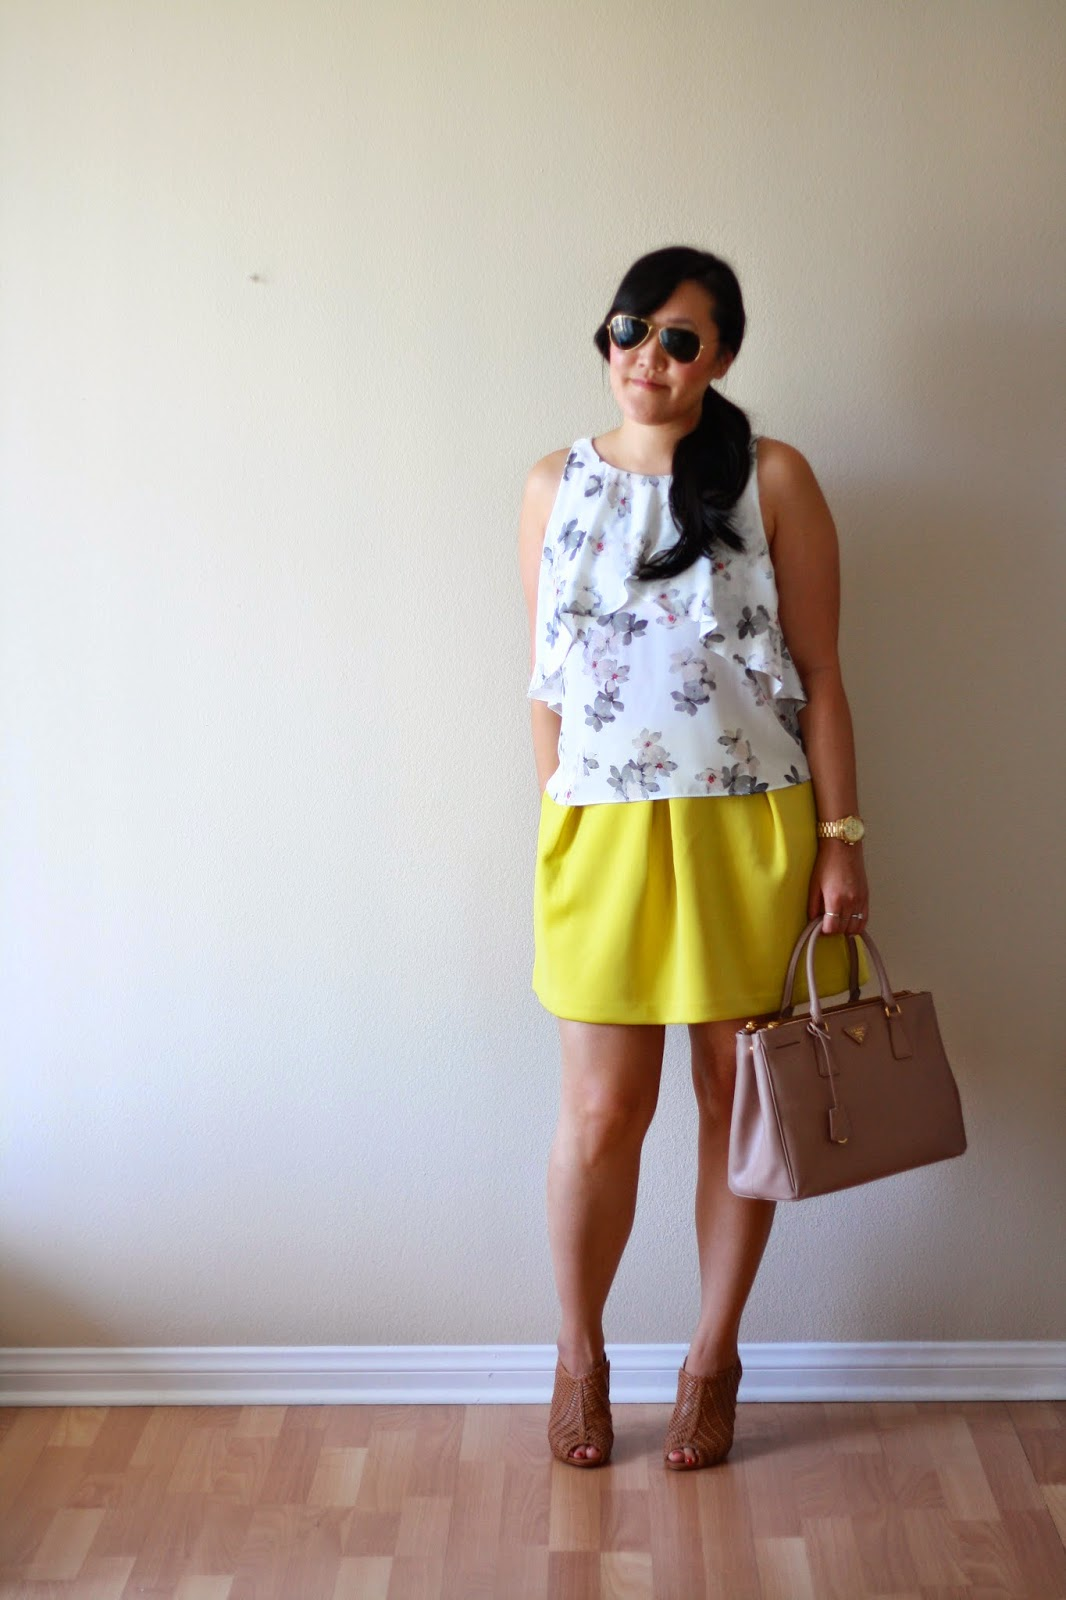 simplyxclassic, zara, rayban, asos skirt, yellow skirt, floral top, blogger, style blogger, fashion blogger, california blogger, ootd, outfit of the day